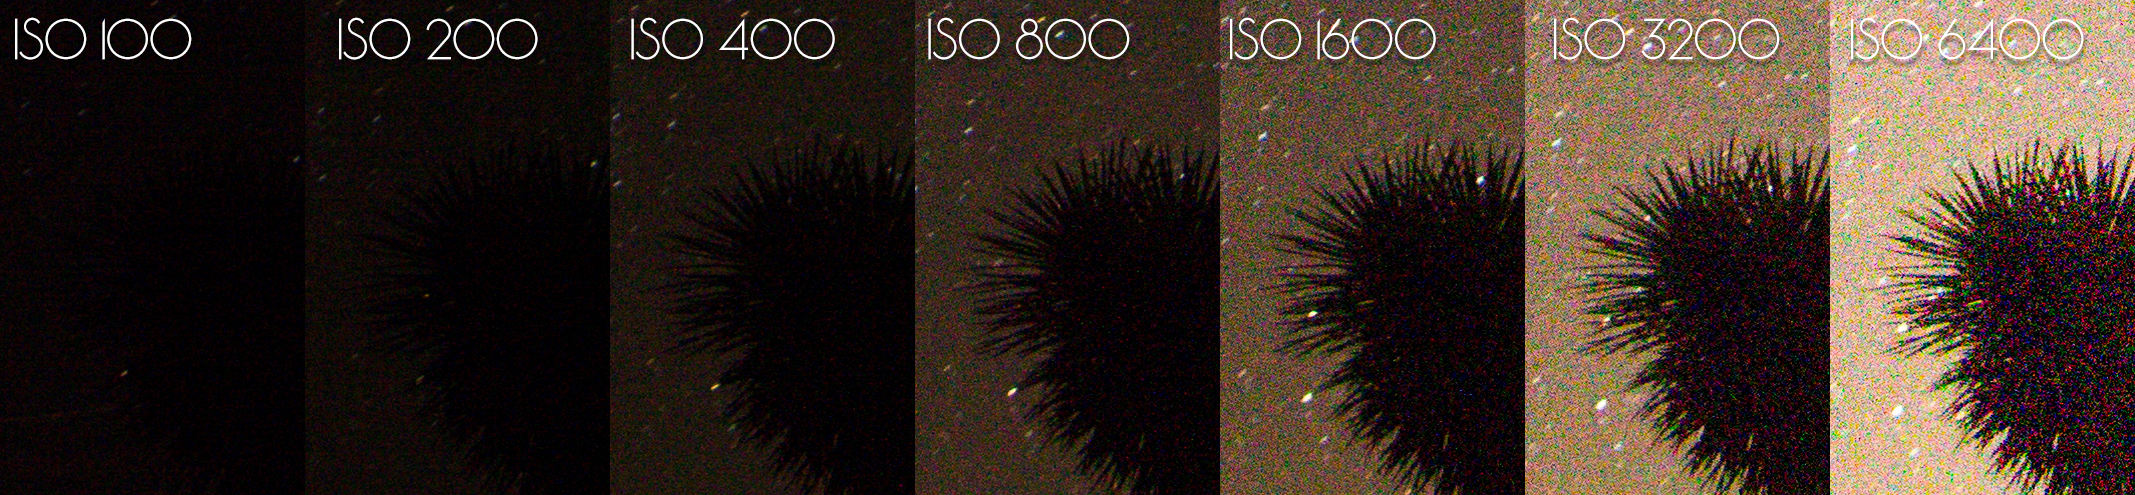 How to Find the Best ISO for Astrophotography: Dynamic Range